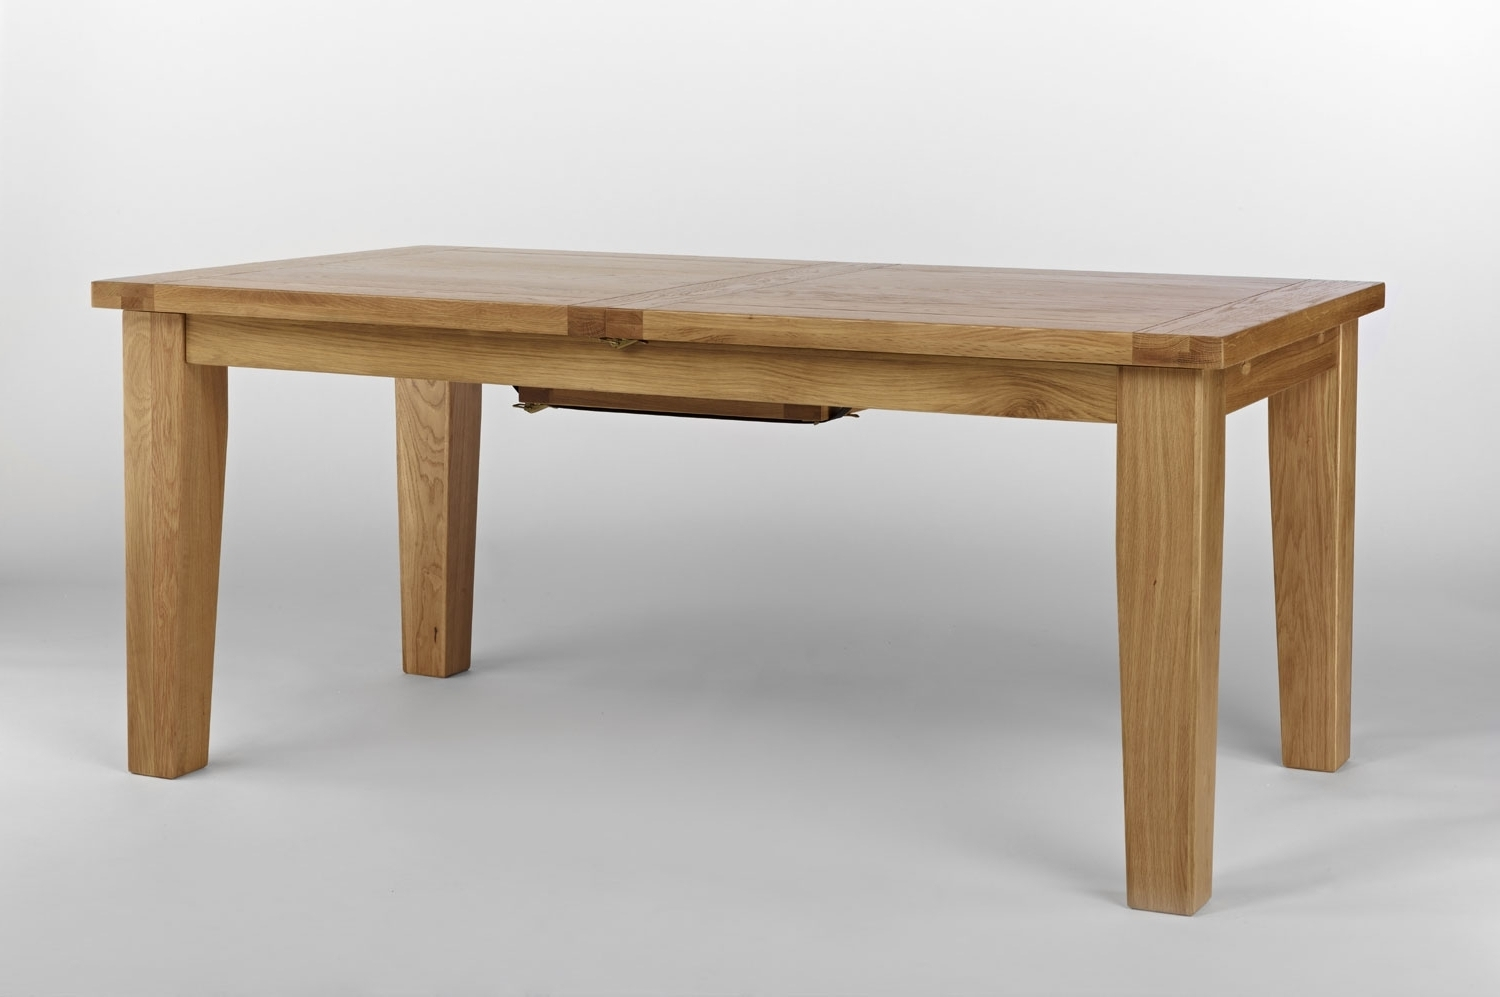 Provence Oak Extending Dining Table – 180 230 Cm – Cw Furniture With Regard To Most Up To Date Provence Dining Tables (Gallery 12 of 25)